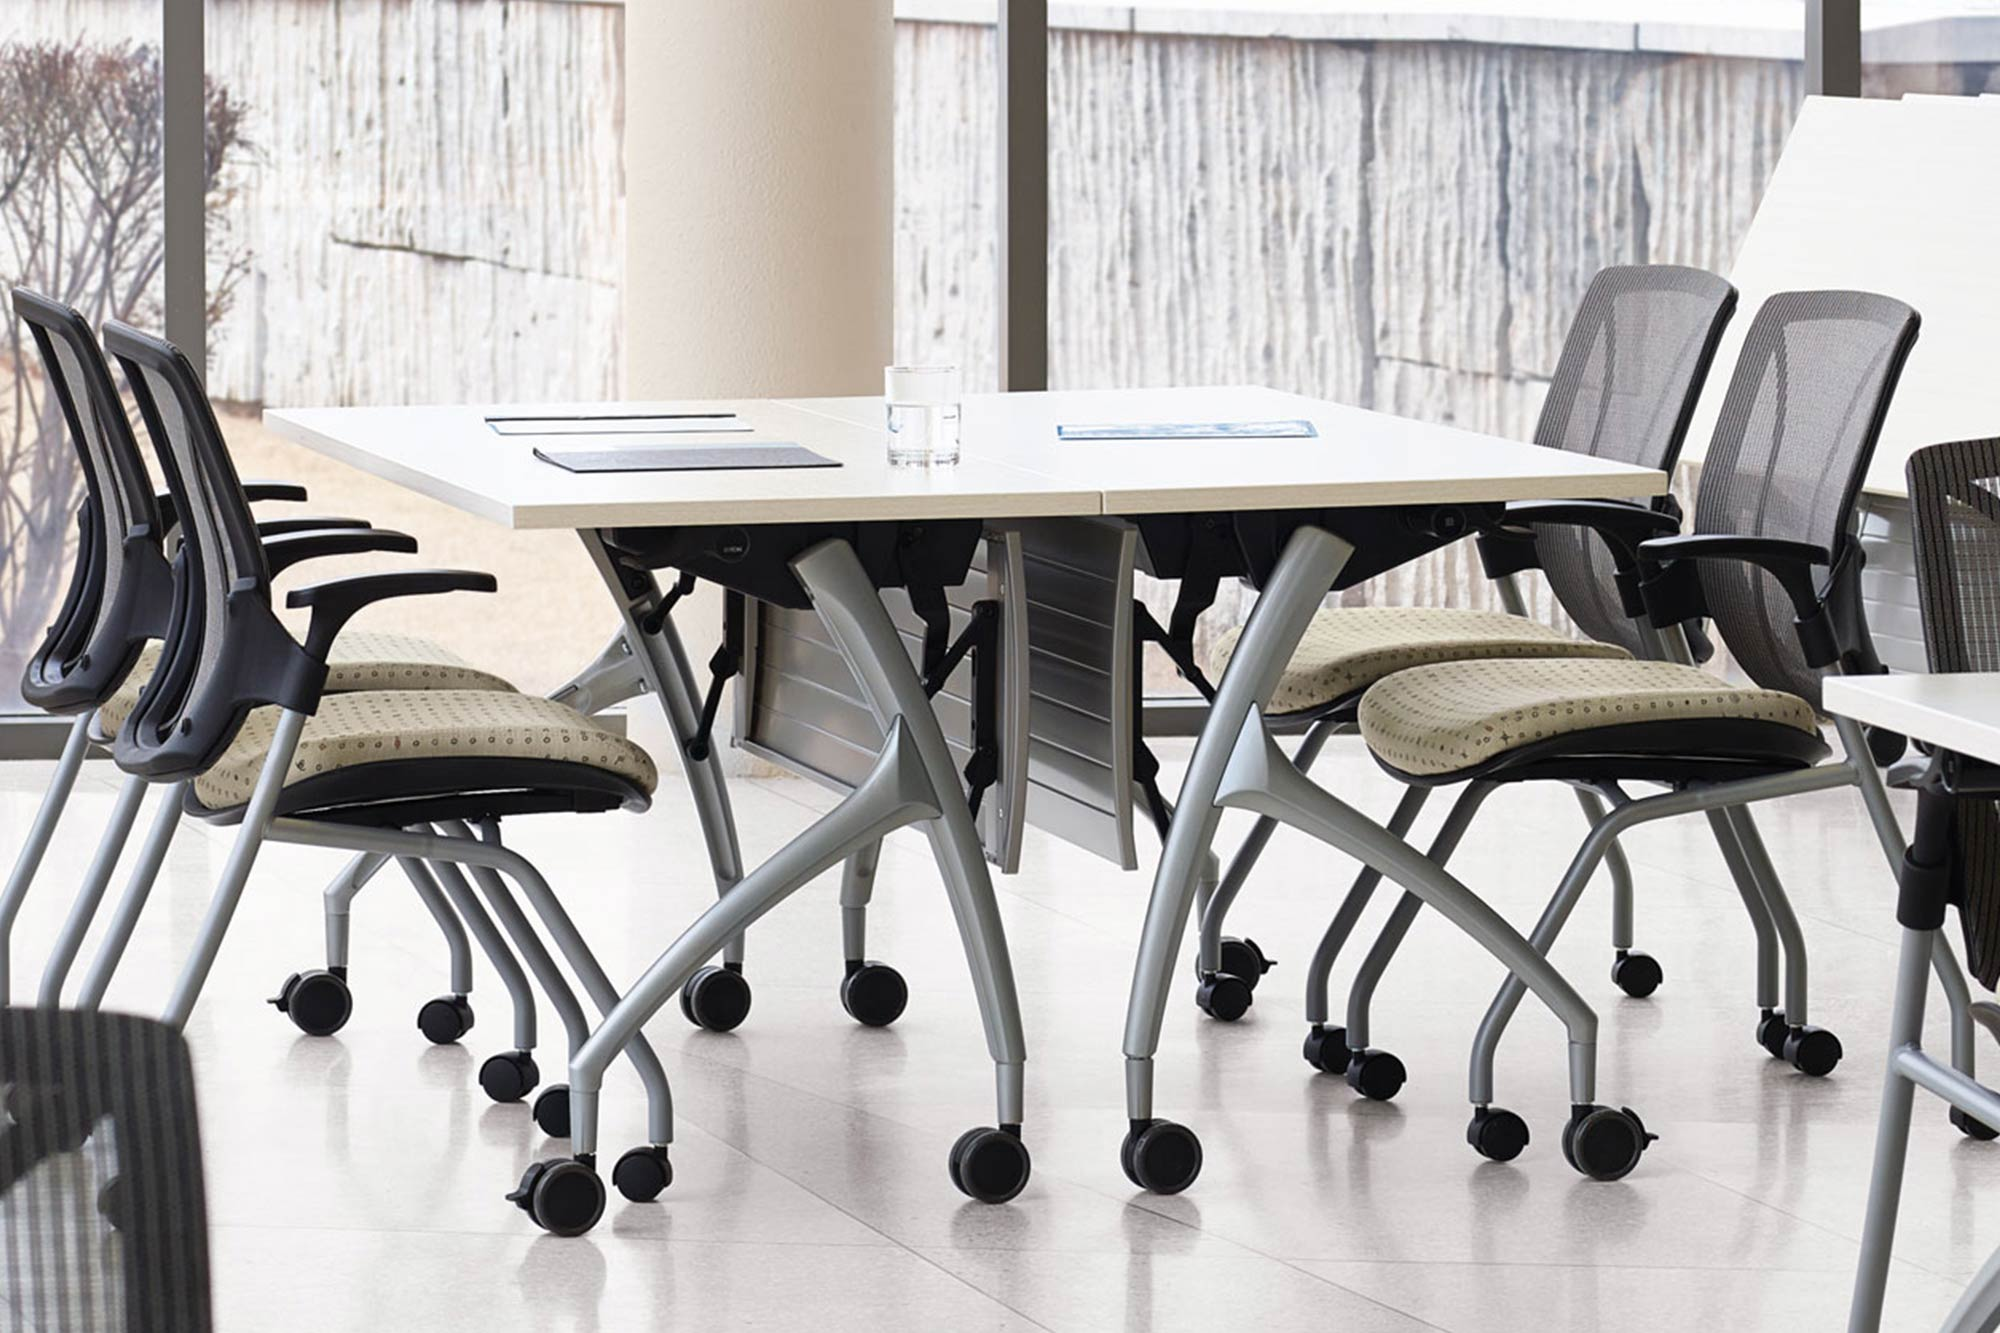 Dynamic training rooms require flexible furniture that can keep up with today's rigorous technological demands.